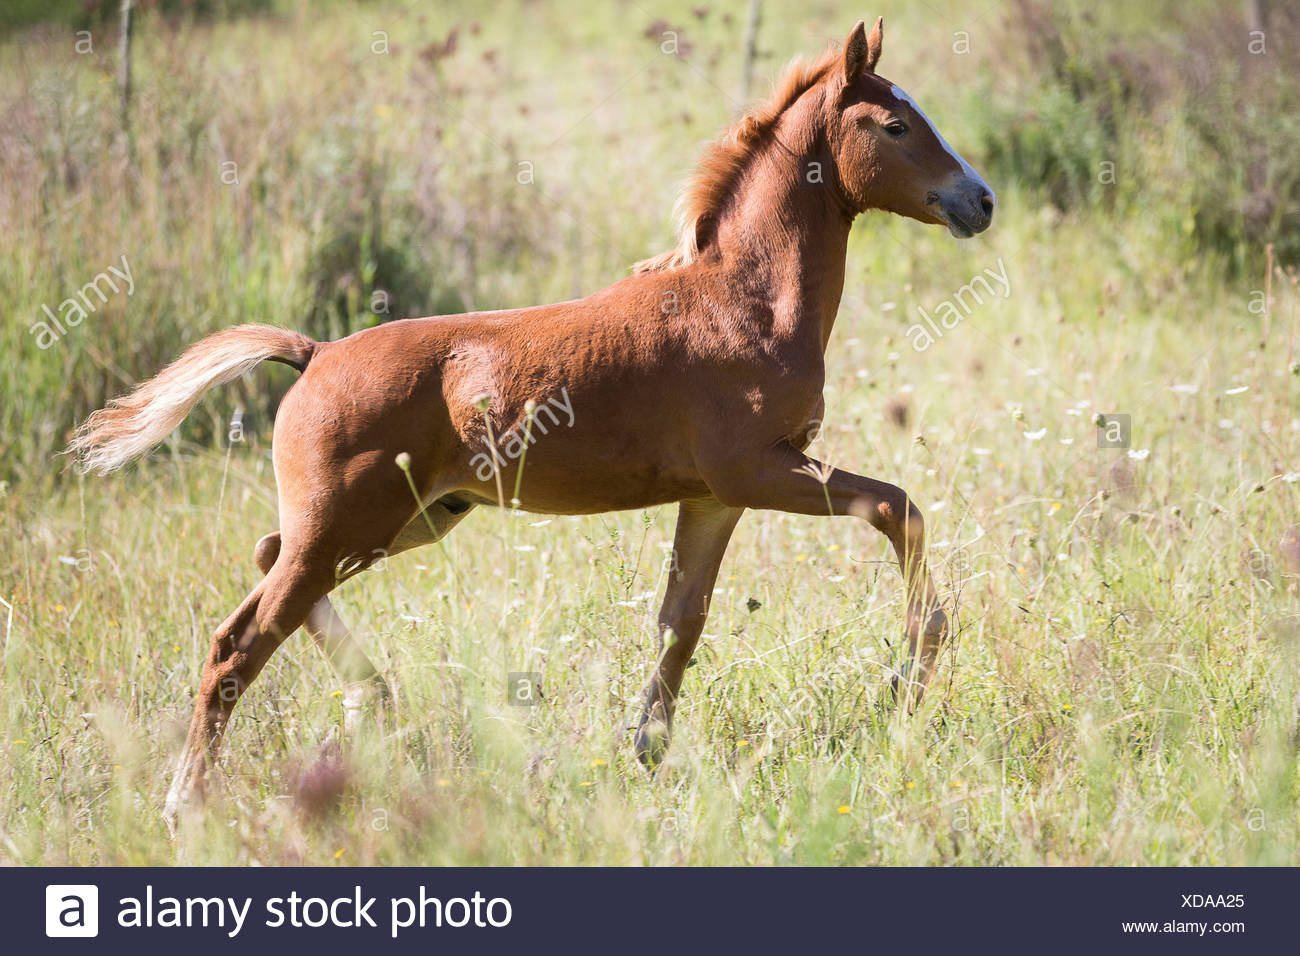 Nooitgedacht Pony. Filly-foal trotting on a pasture. South Africa - Stock Image